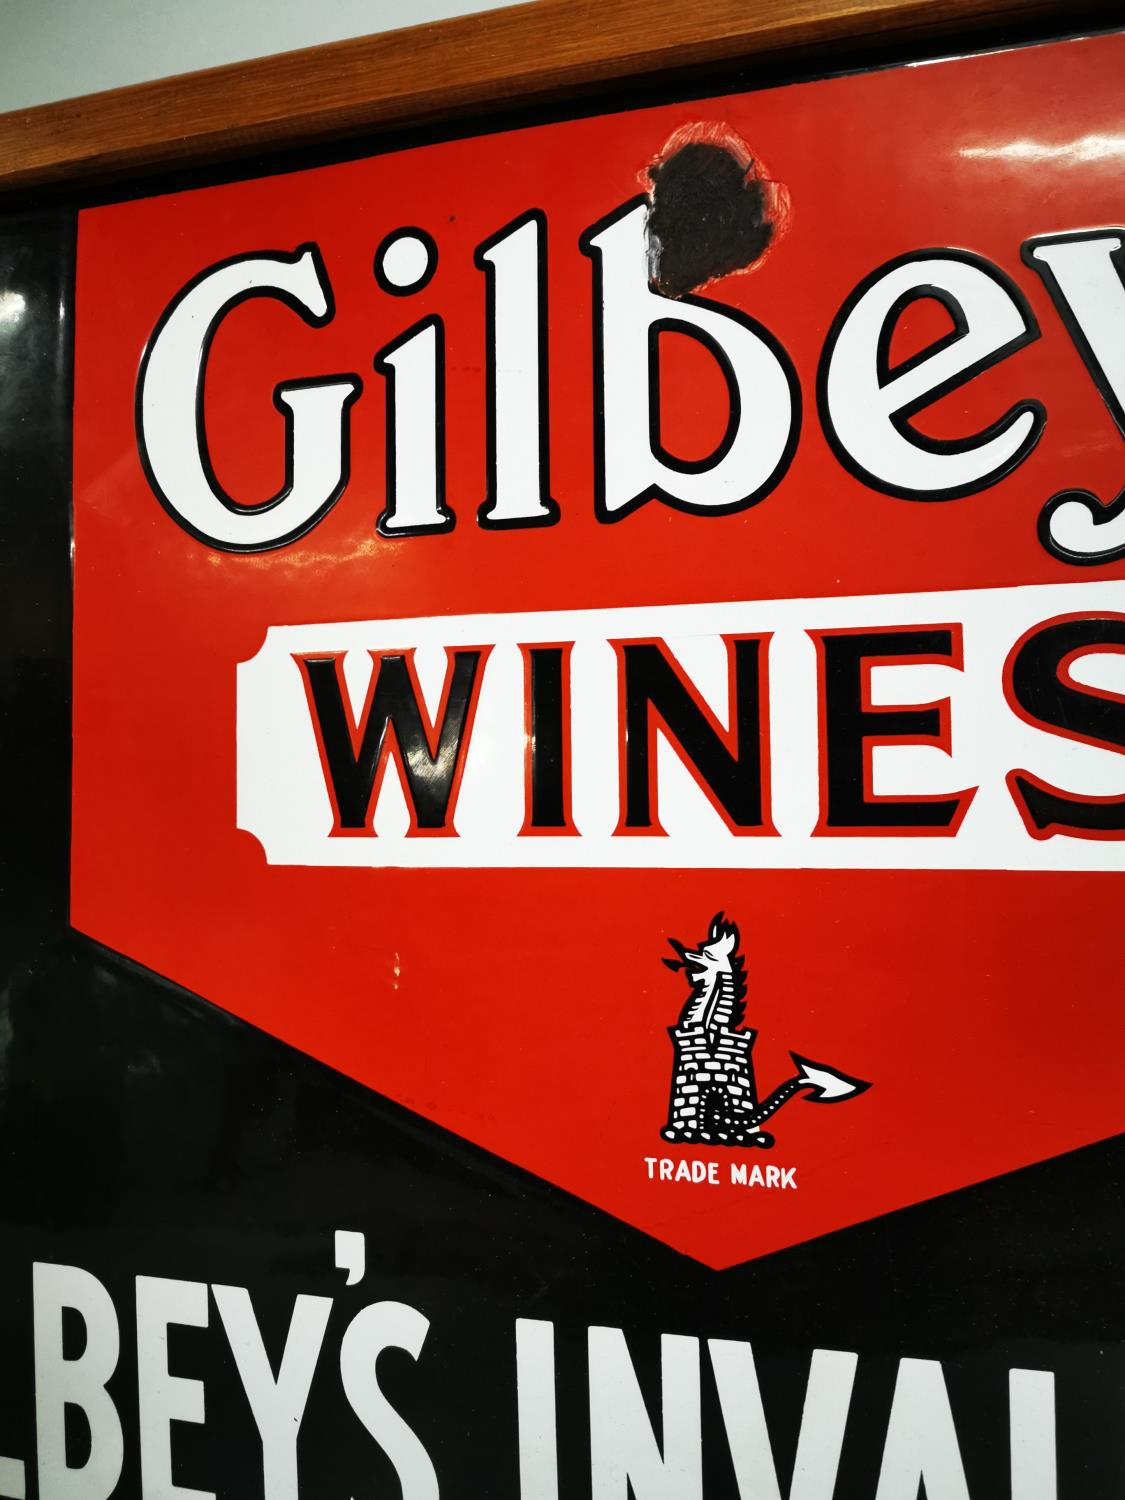 Gilbey's Wine and Port advertising sign. - Image 3 of 4